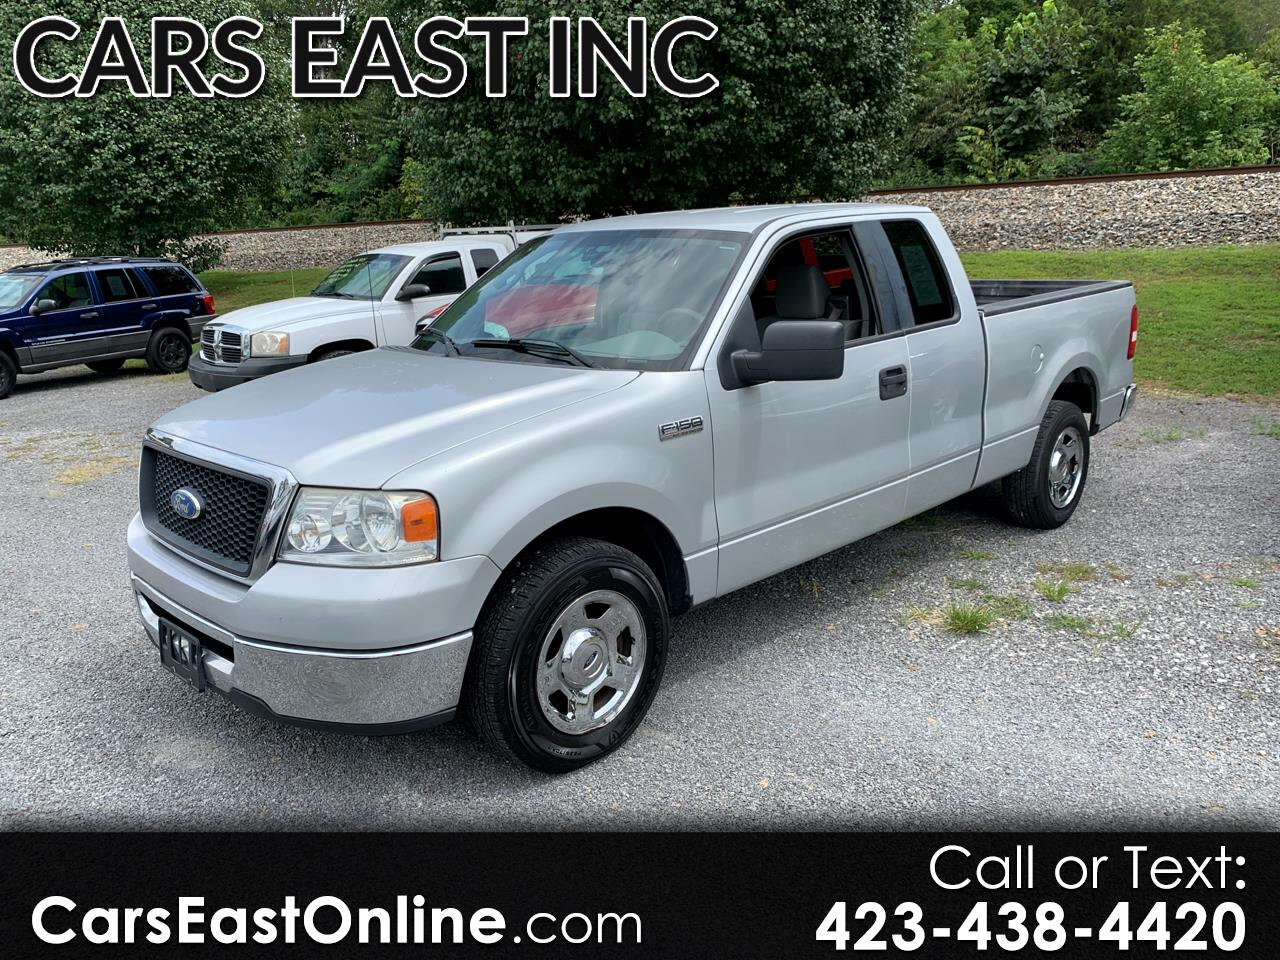 2008 Ford F-150 2WD SuperCab 145